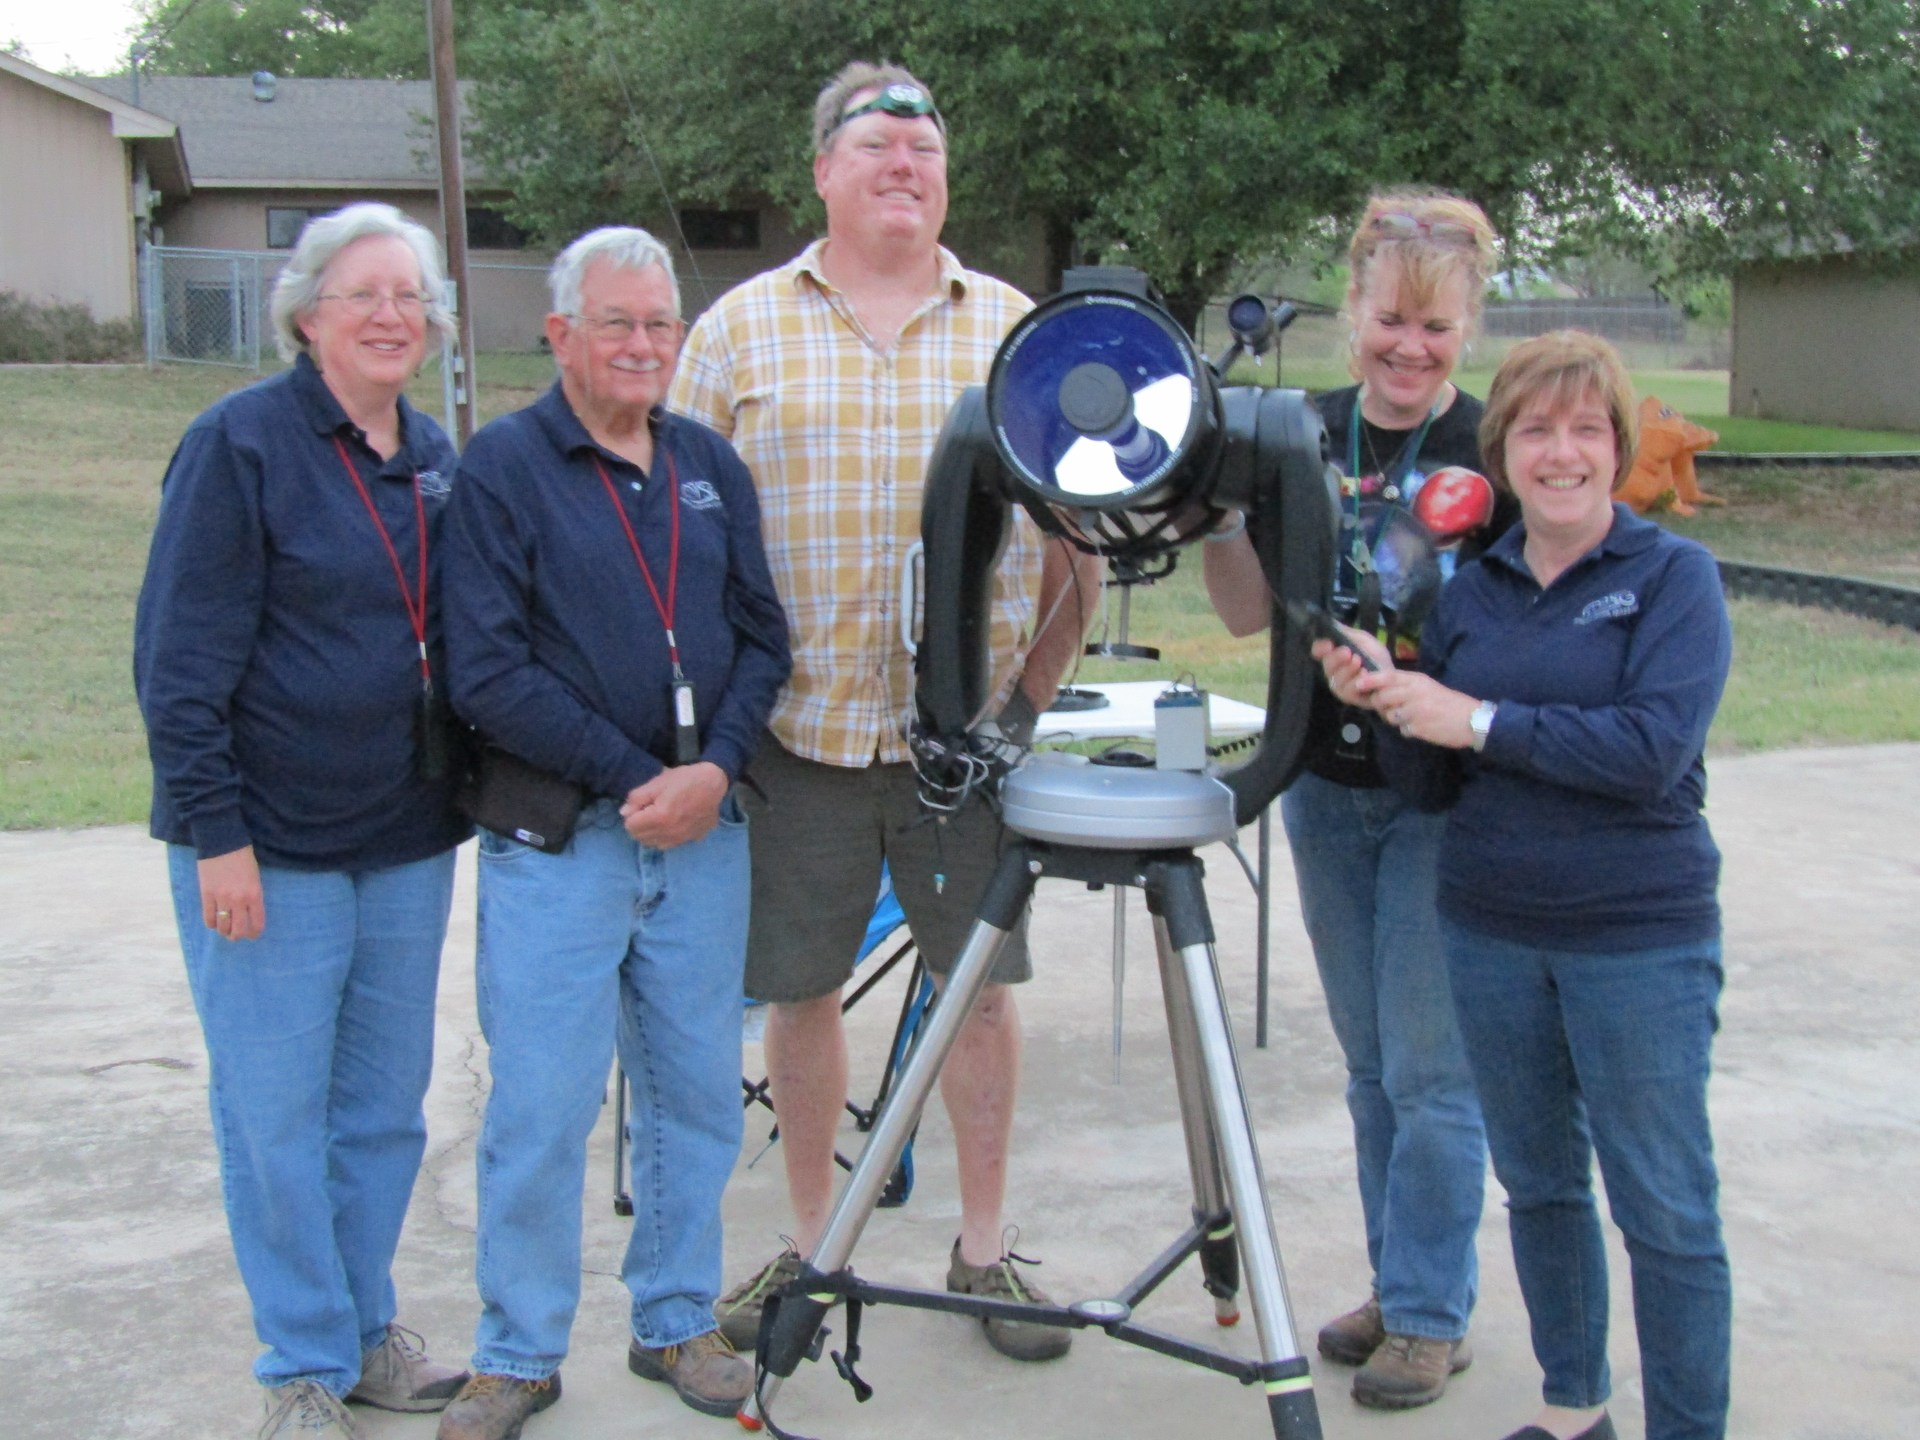 Mason Star Gazers at the Star Party